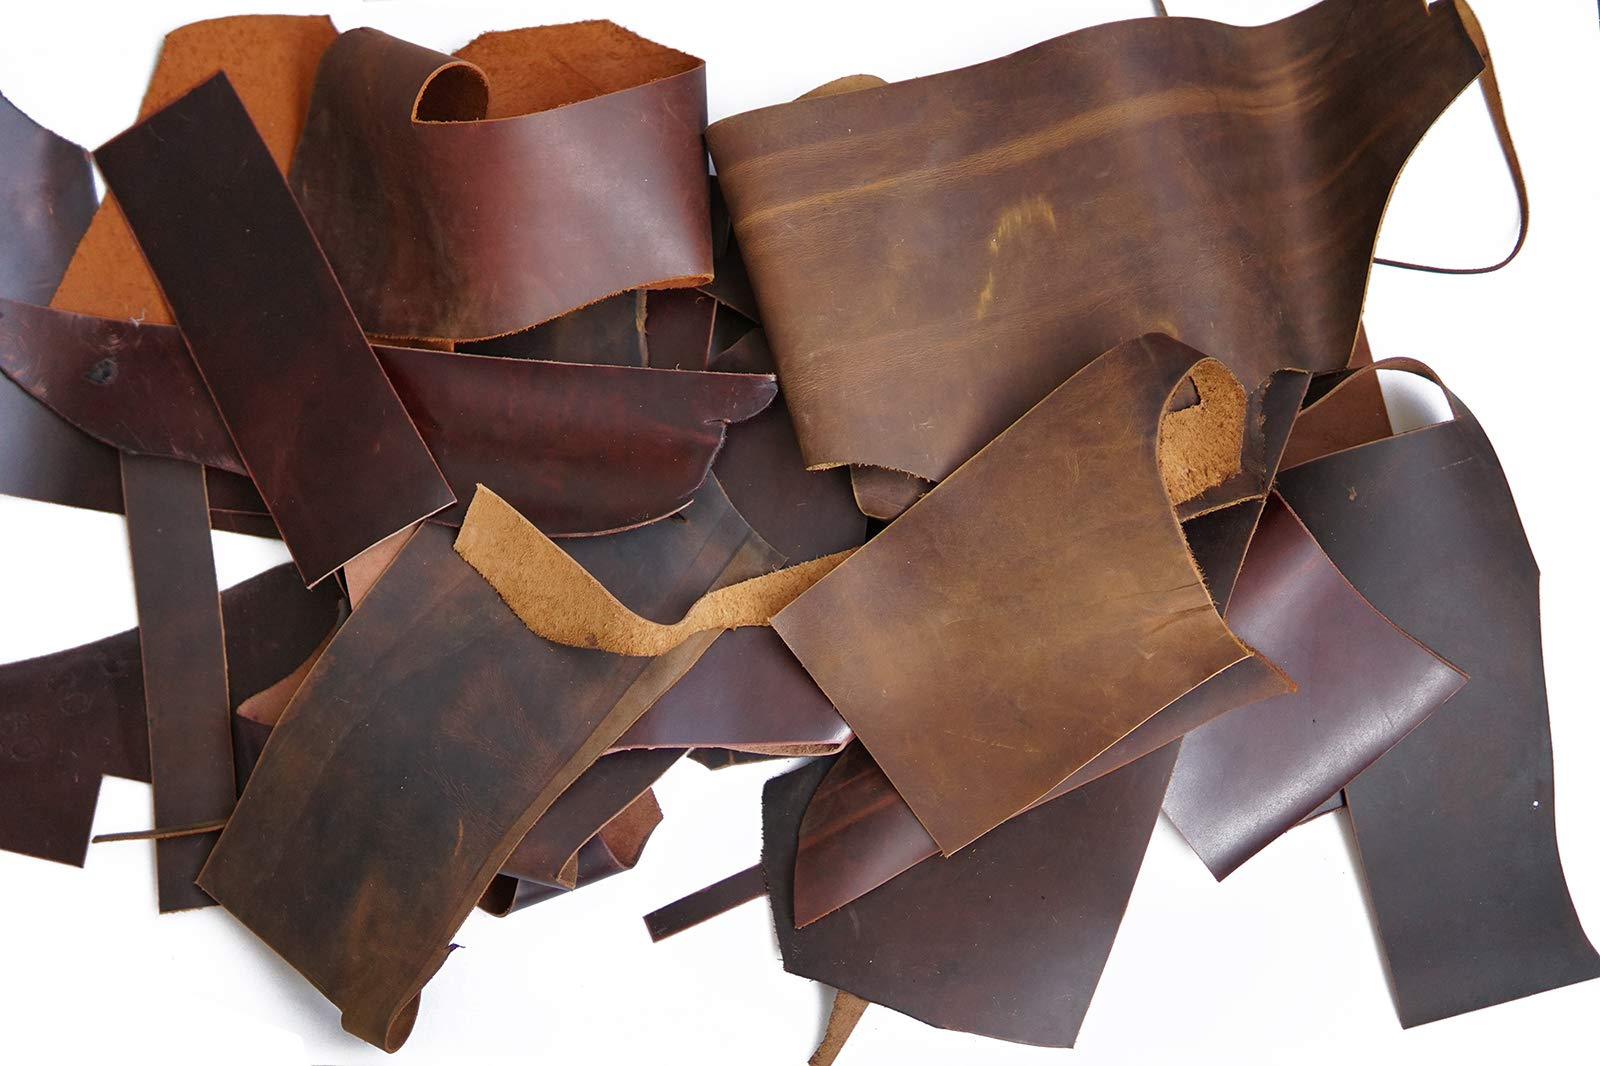 Leather Scrapes Usable Holster & Sheath - 1.4mm-2.0mm Leather Hide for Crafts/Tooling/Sewing/Handmade (1lb) by Jeereal